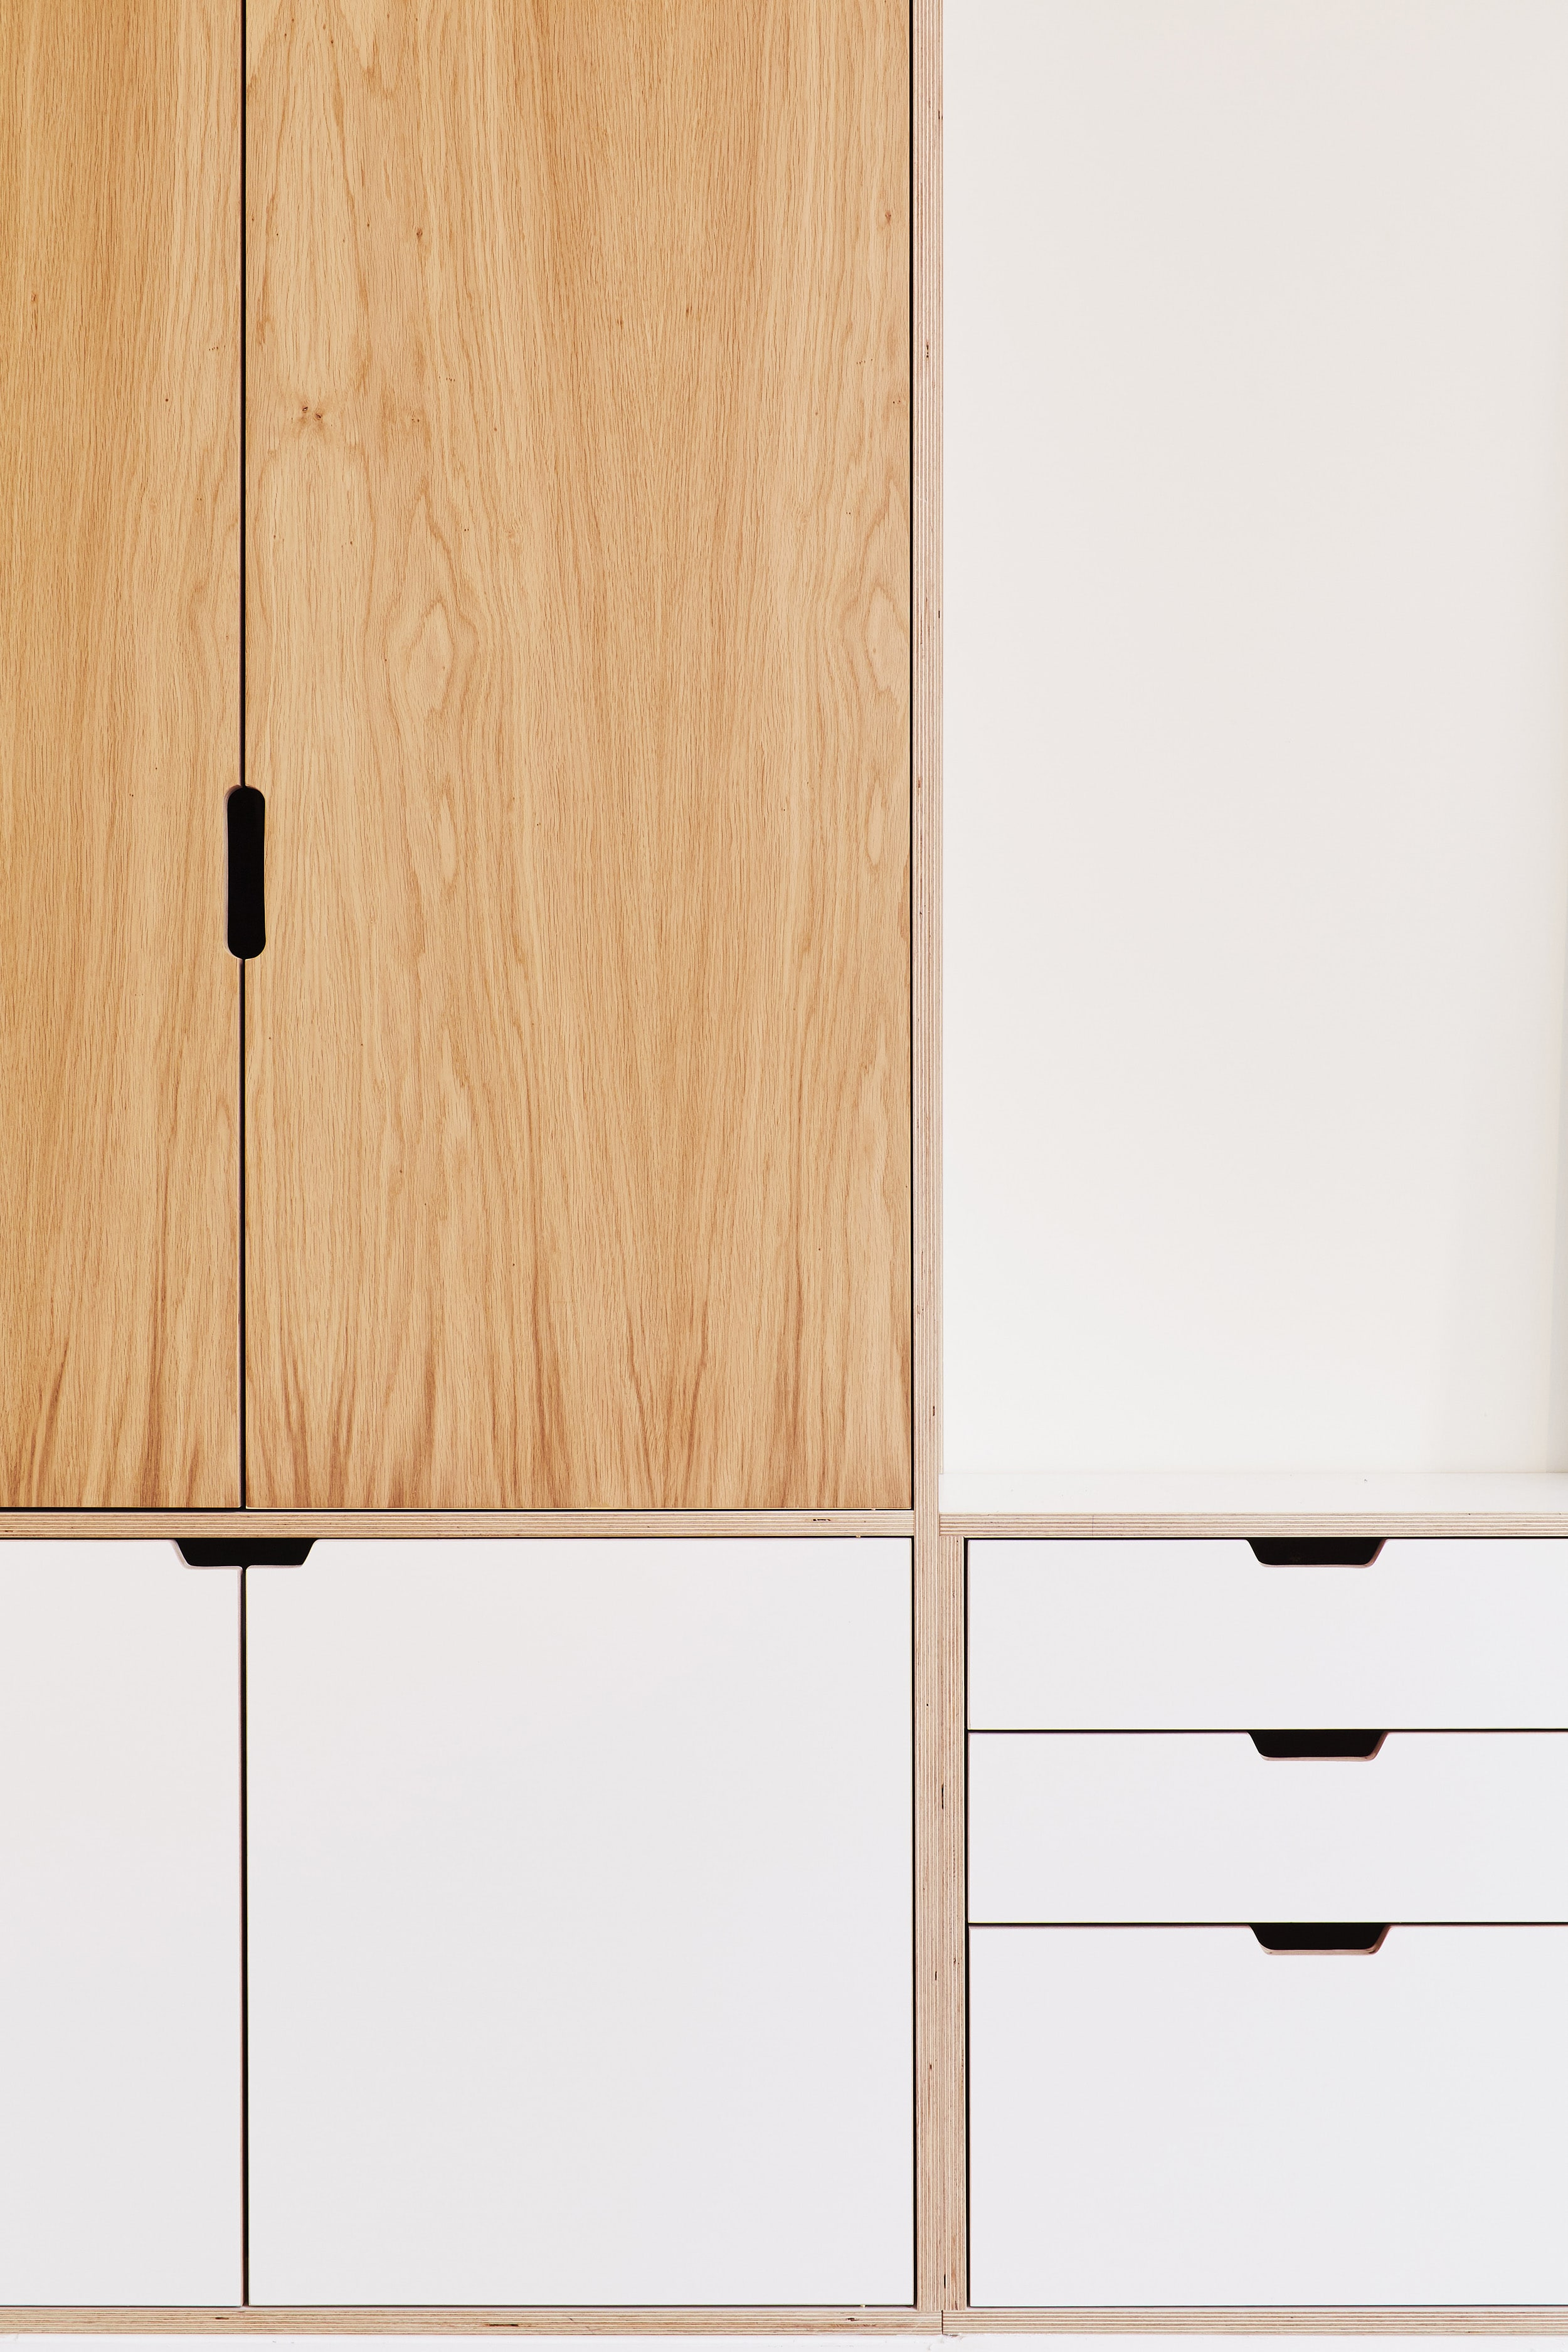 A detail of the oak veneer doors from the plywood wardrobe in Cass's house in Dalston, E8 designed by Lozi